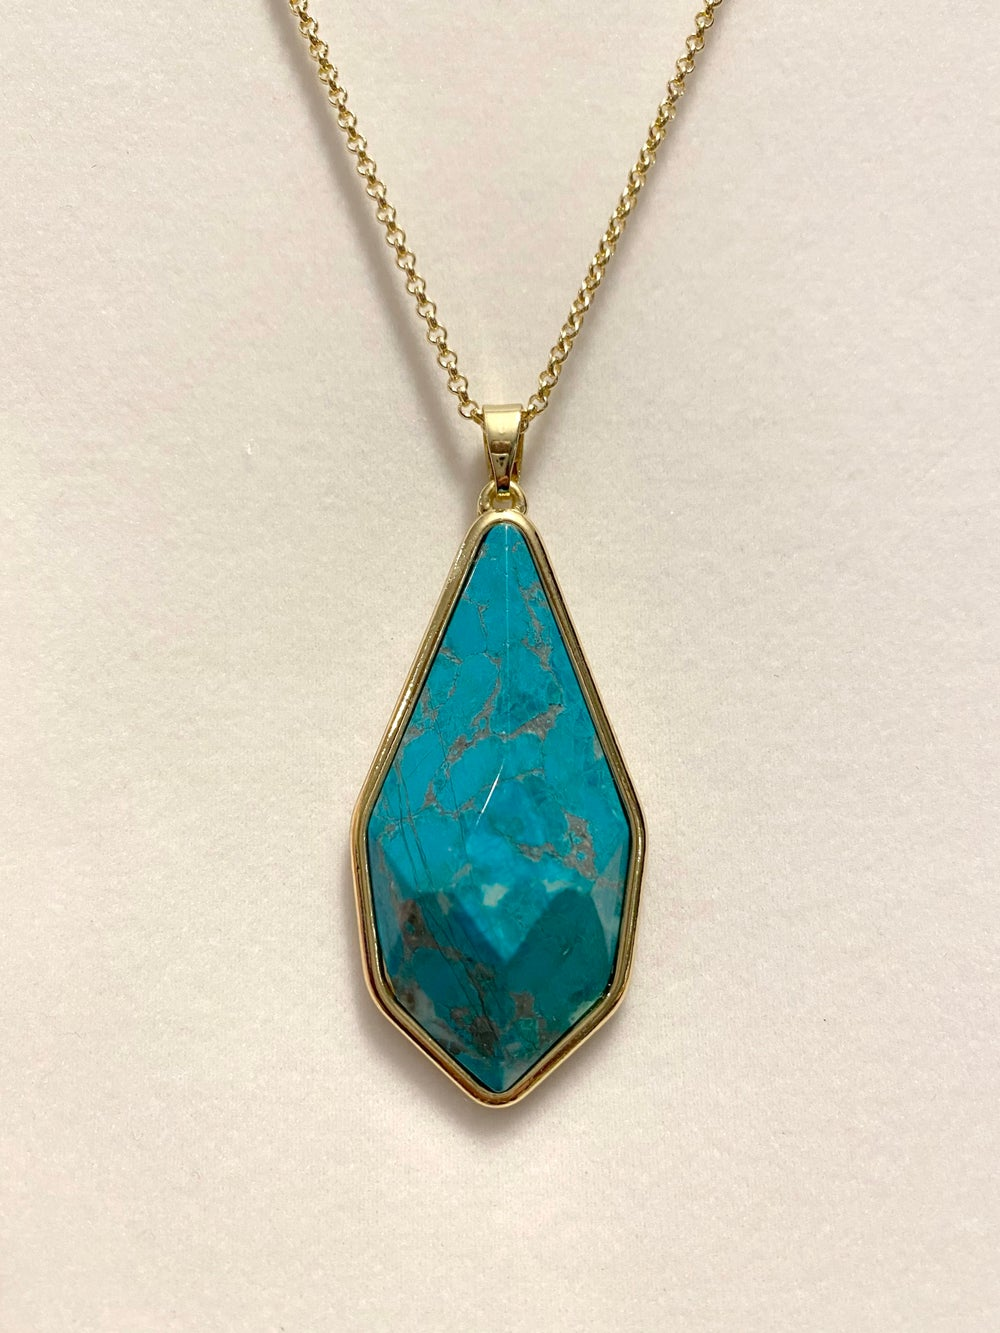 Turquoise Teardrop Pendant with Gold Chain Necklace